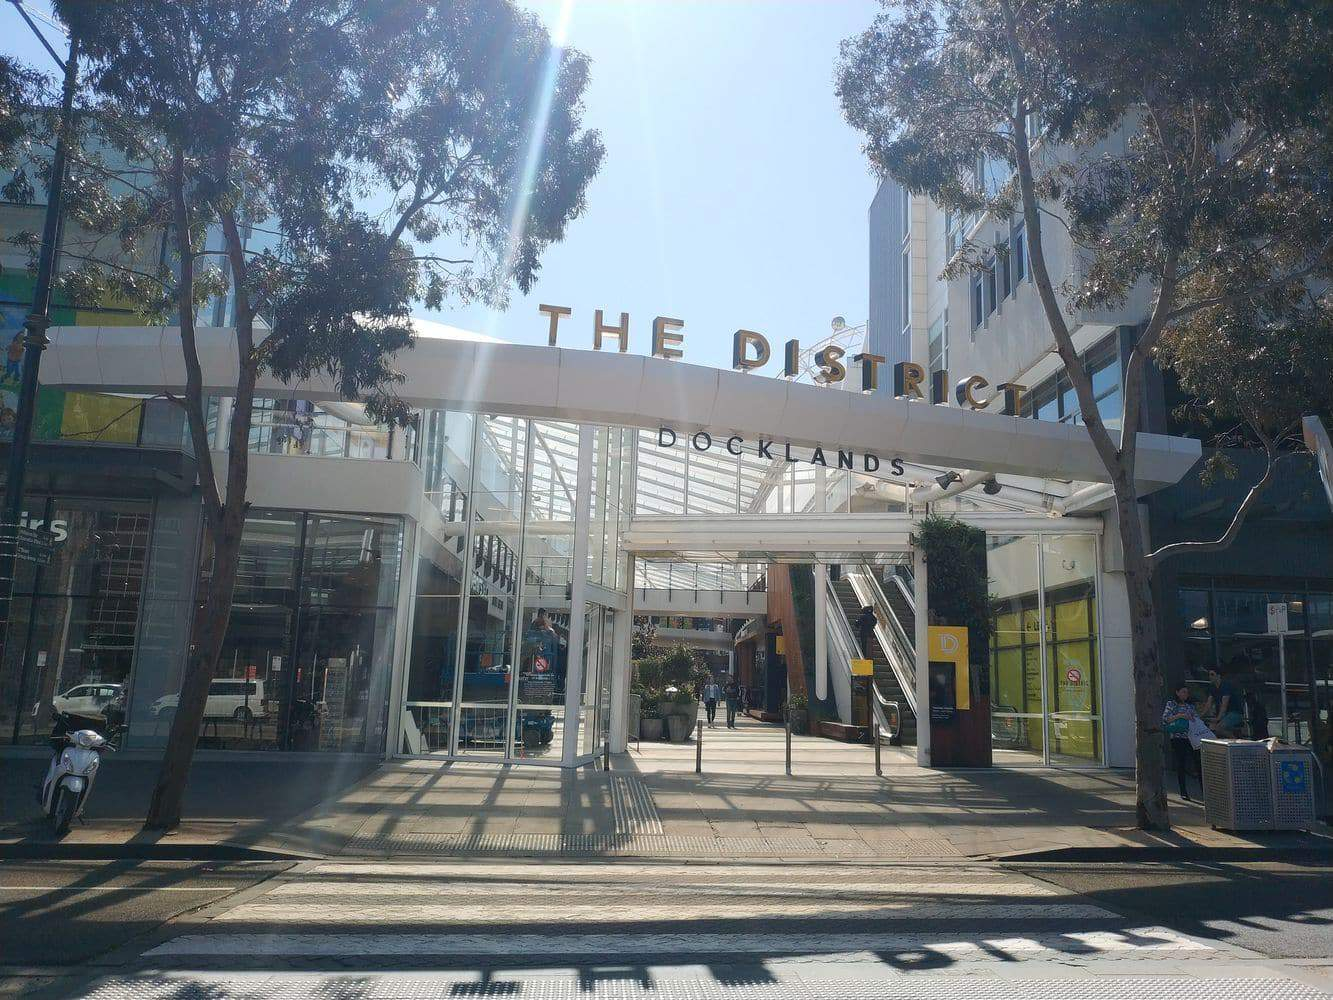 The District Docklands 01